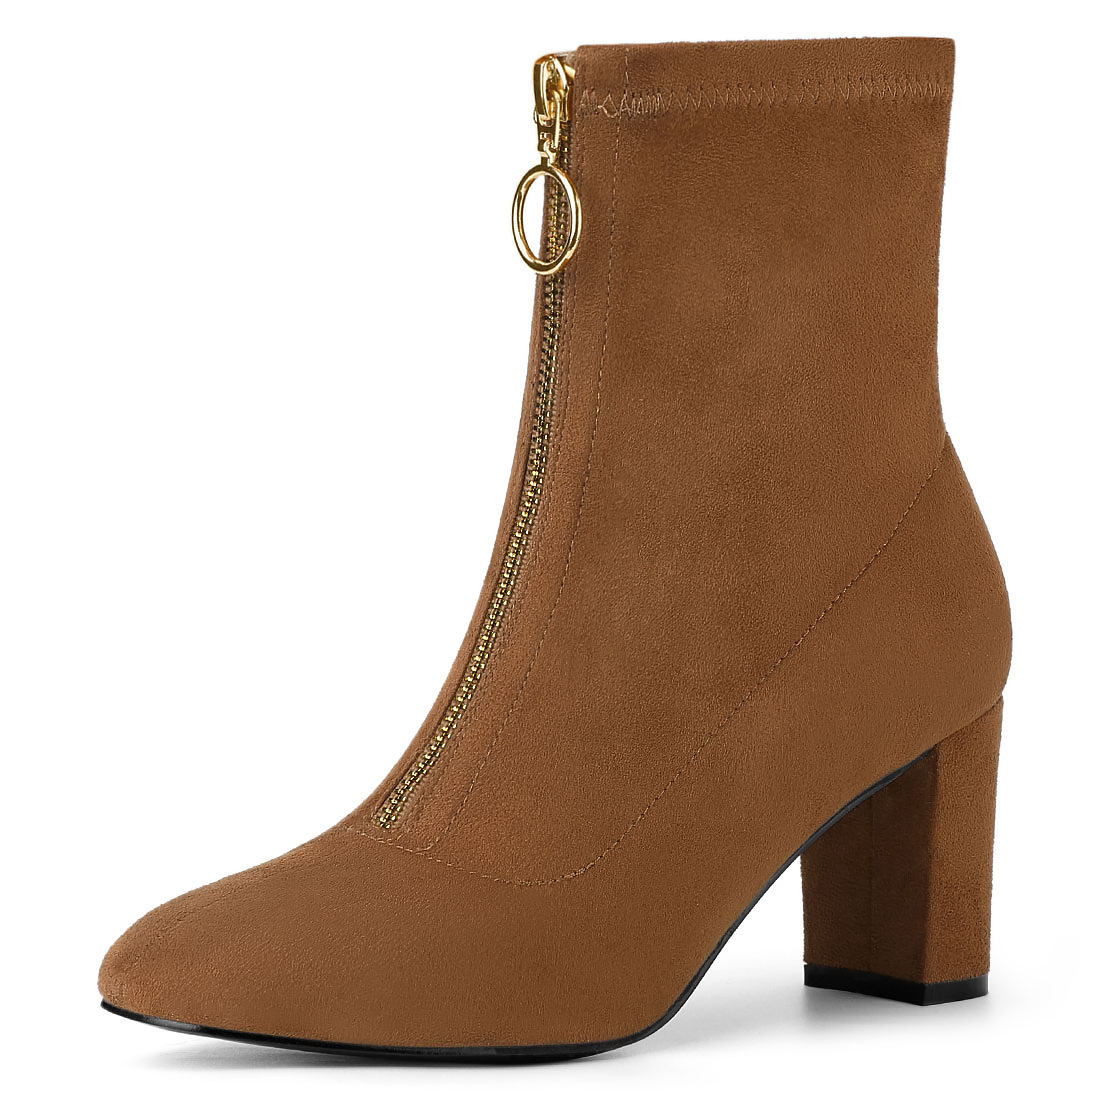 Allegra K Women's Front Zipper Chunky Heel Ankle Boots Brown US 10